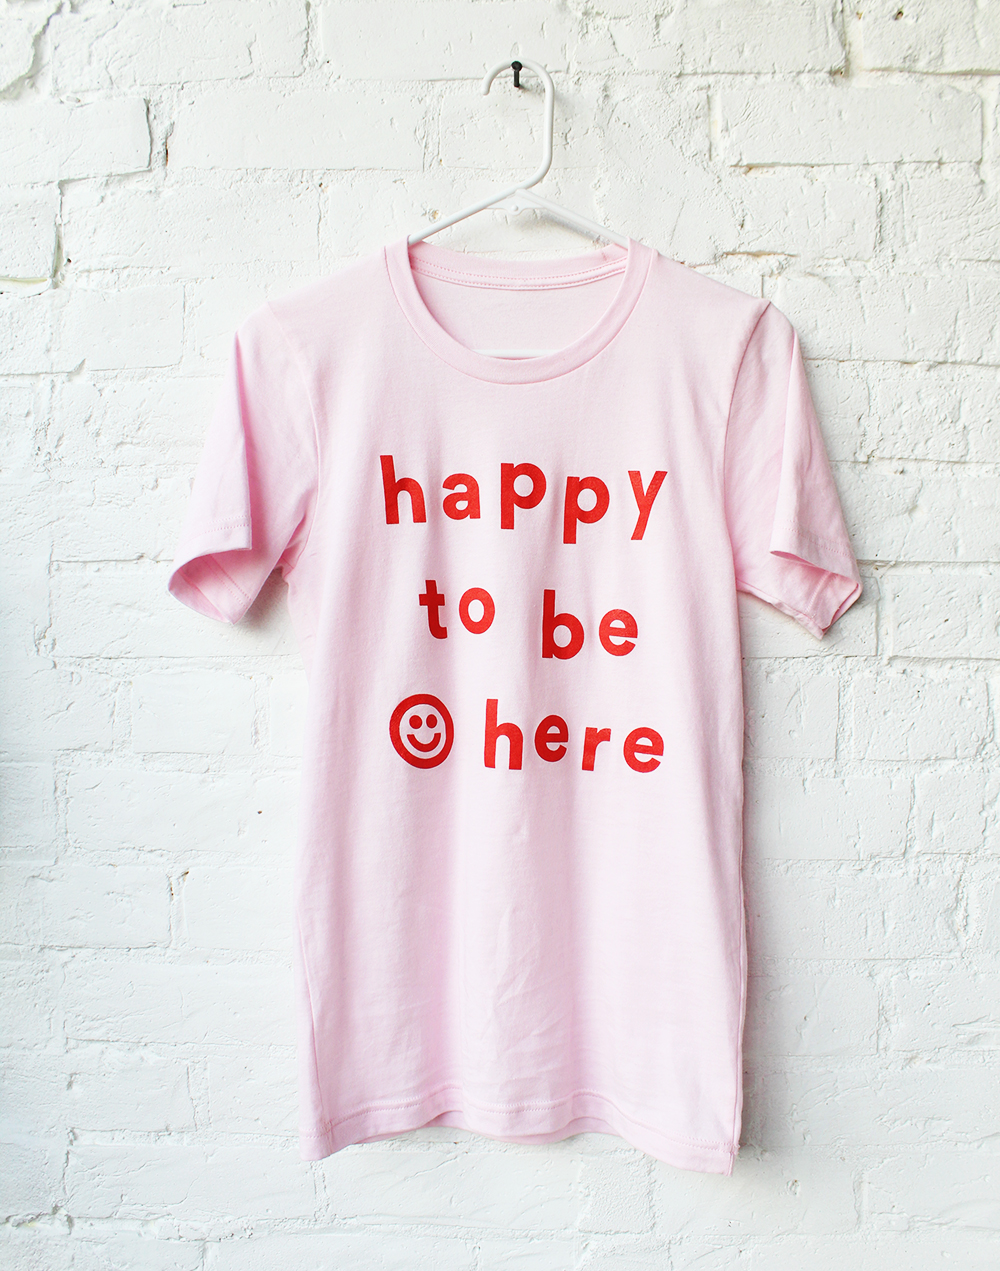 happy to be here tee.jpg